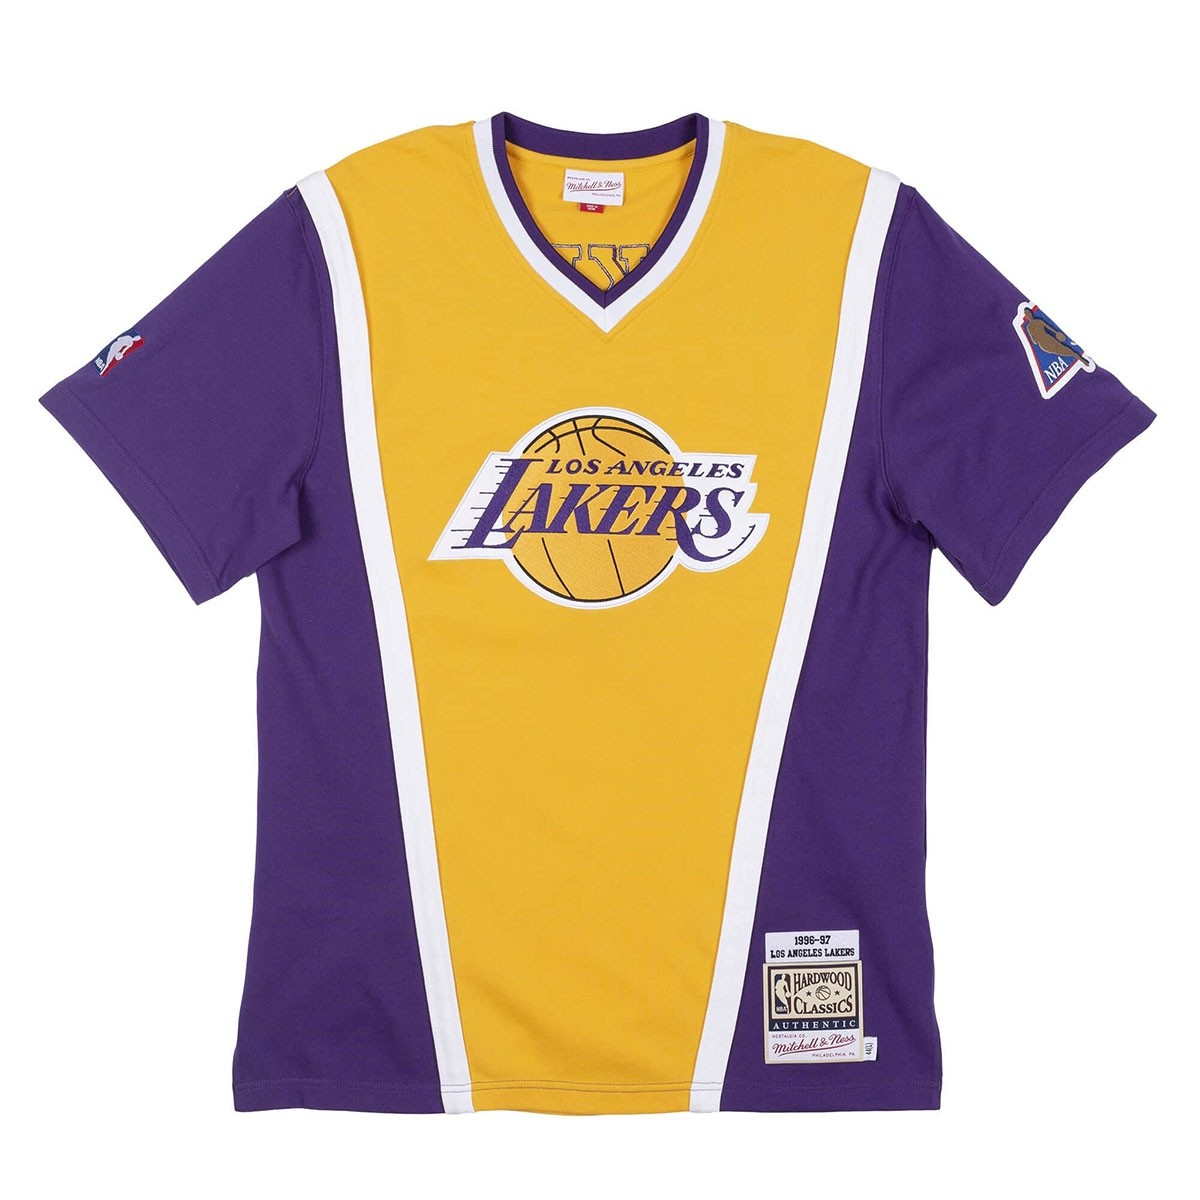 Mitchell & Ness Authentic Shooting Shirt Los Angeles Lakers 1996-97